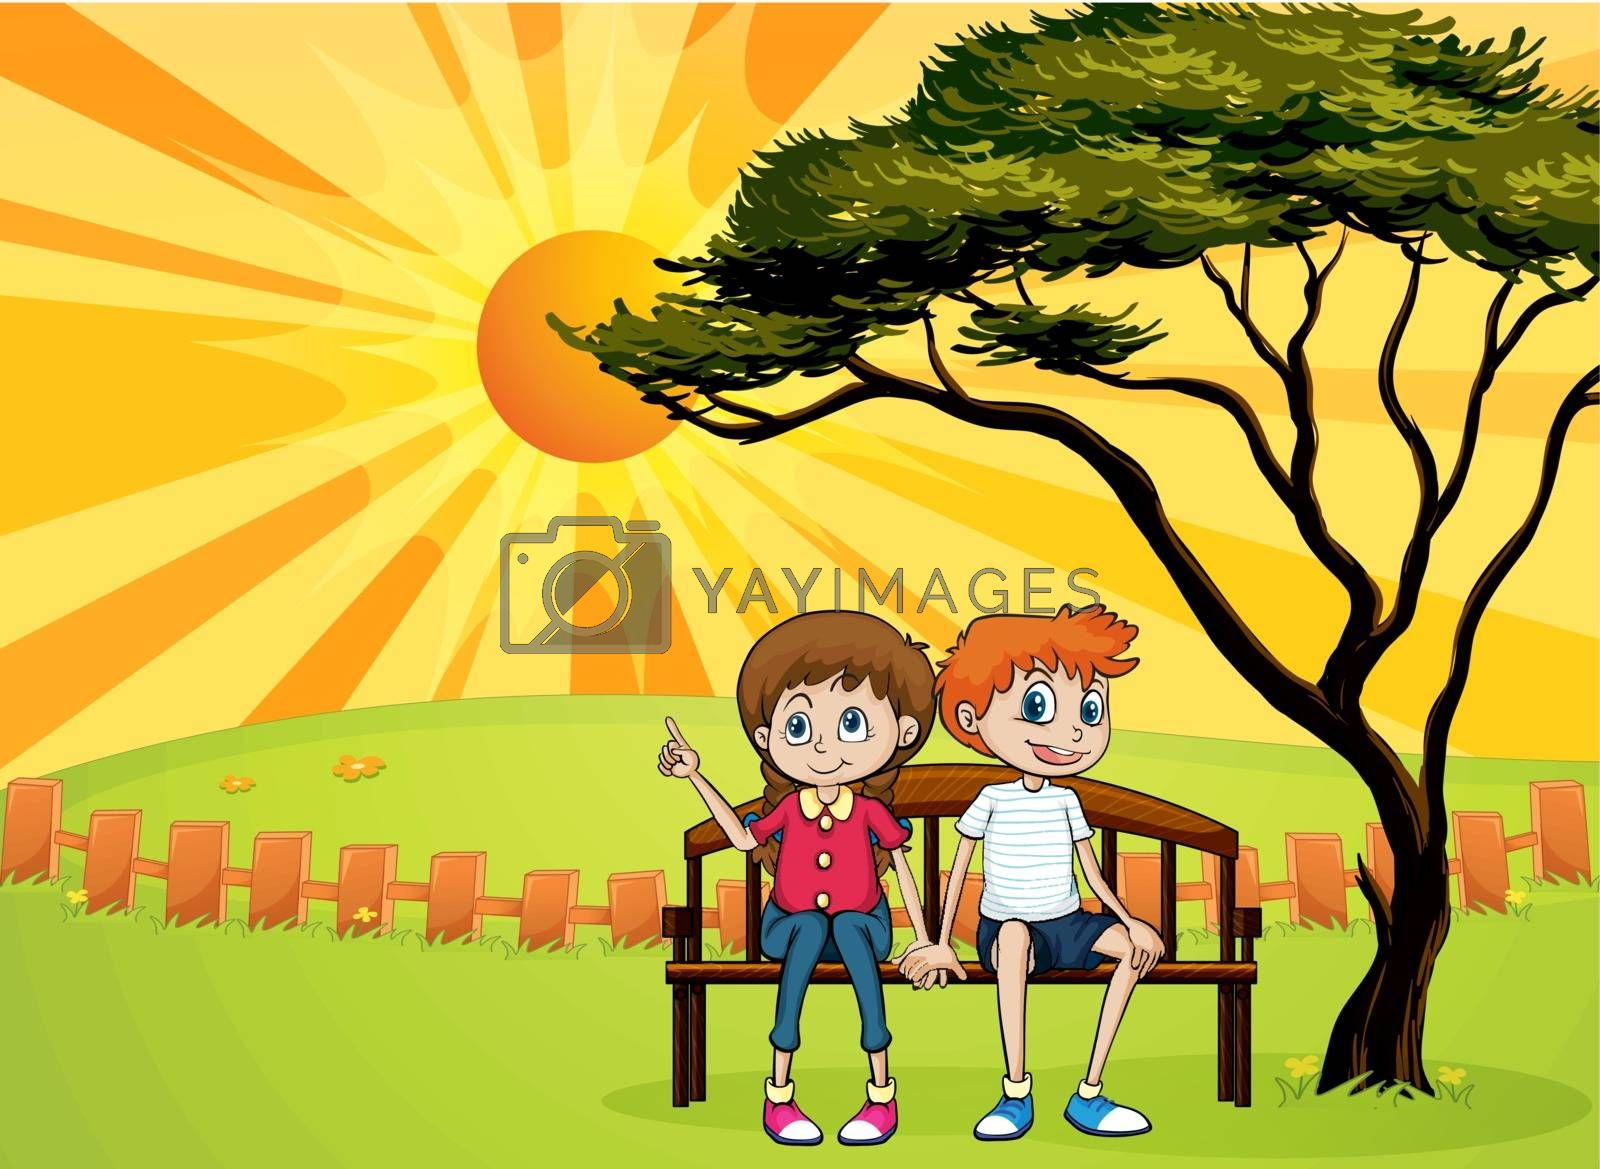 Illustration of kids sitting on a bench and a beautiful landscape